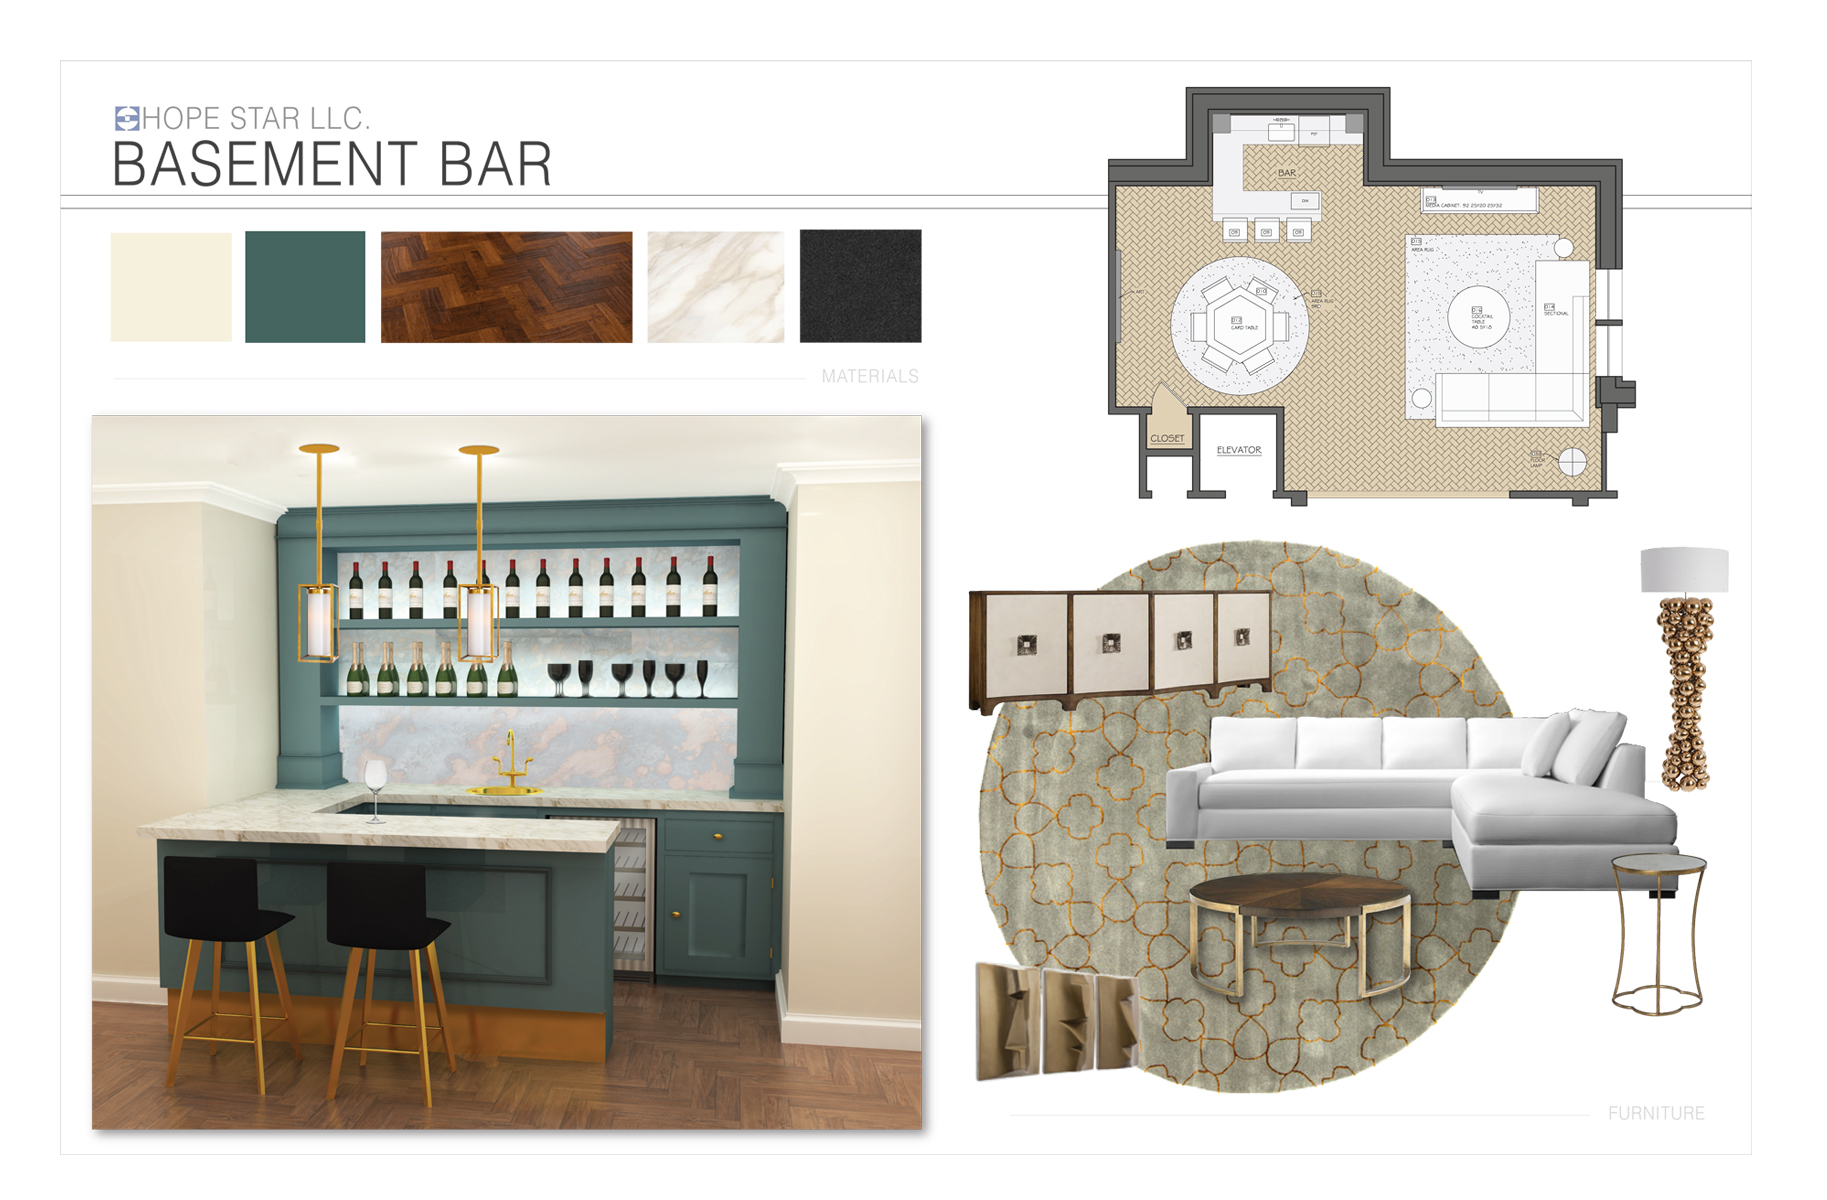 BASEMENT-BAR-sm1